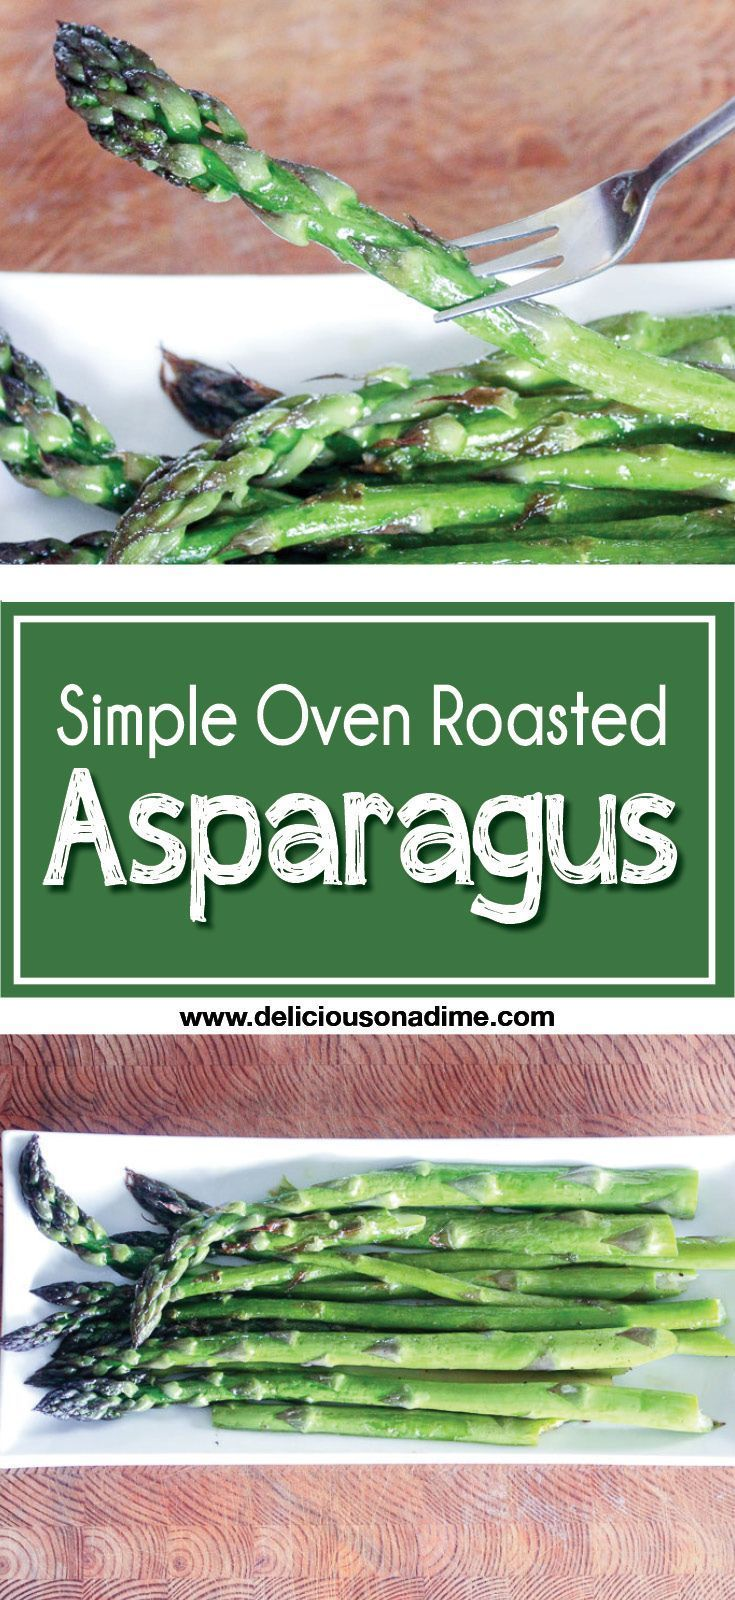 This Simple Oven Roasted Asparagus takes just a few minutes to make and tastes the way asparagus should. It's the perfect addition to any meal, and the perfect solution for anyone who has ever asked how to cook asparagus. Three ingredients and ready in five minutes? Yes, please!